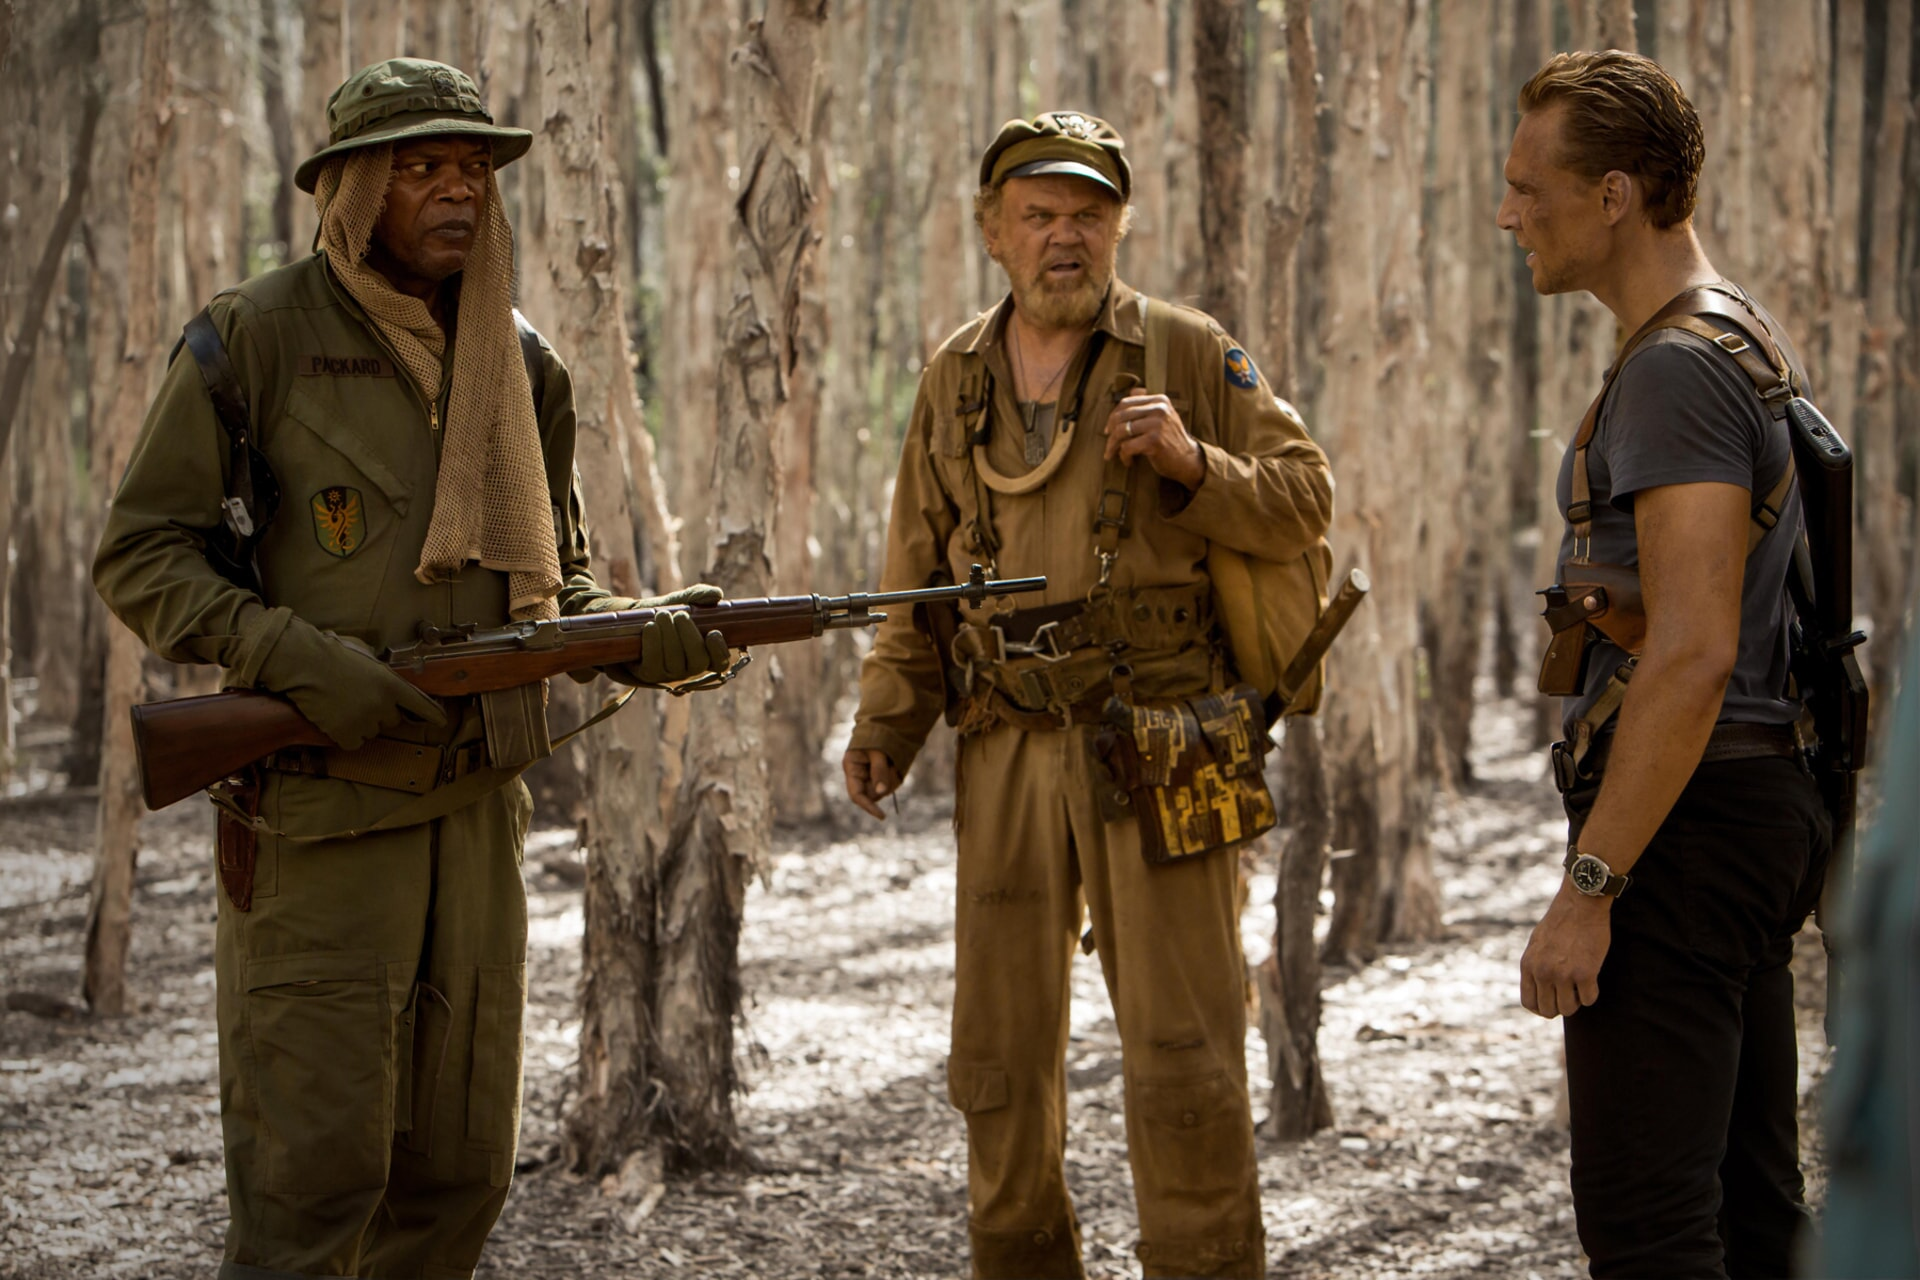 """SAMUEL L. JACKSON as Preston Packard, JOHN C. REILLY as Hank Marlow and TOM HIDDLESTON as James Conrad in Warner Bros. Pictures', Legendary Pictures' and Tencent Pictures' action adventure """"KONG: SKULL ISLAND,"""" a Warner Bros. Pictures release."""